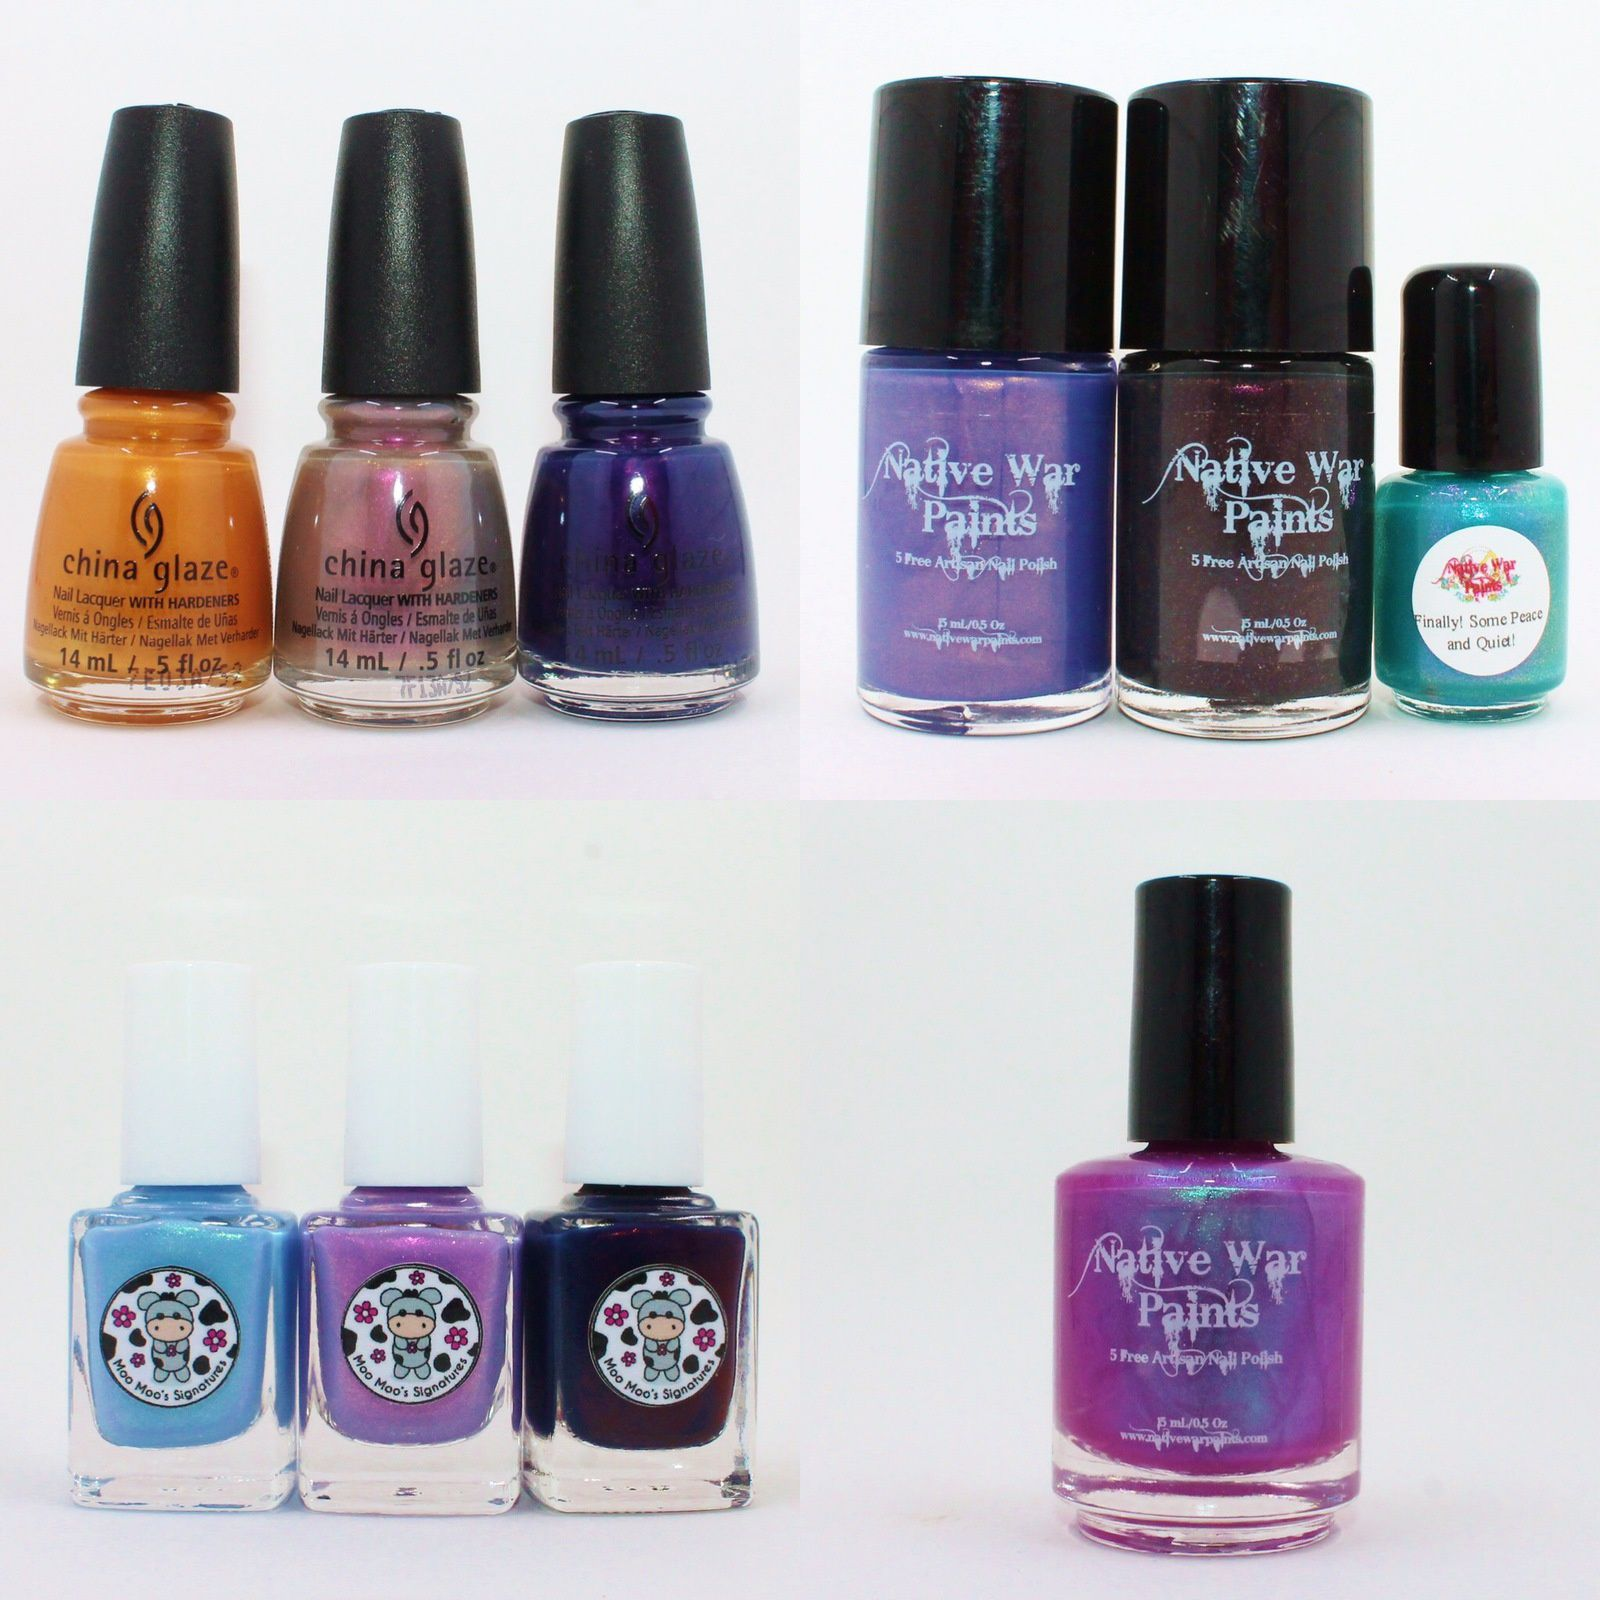 China Glaze Accent Piece, Sin-Derella, Crown for Whatever. NWP September Monthly Box & Candies Apples. Moo Moo's Signatures Fairyland, Fairies' Frozen dessert & The Last Night of Pompeii